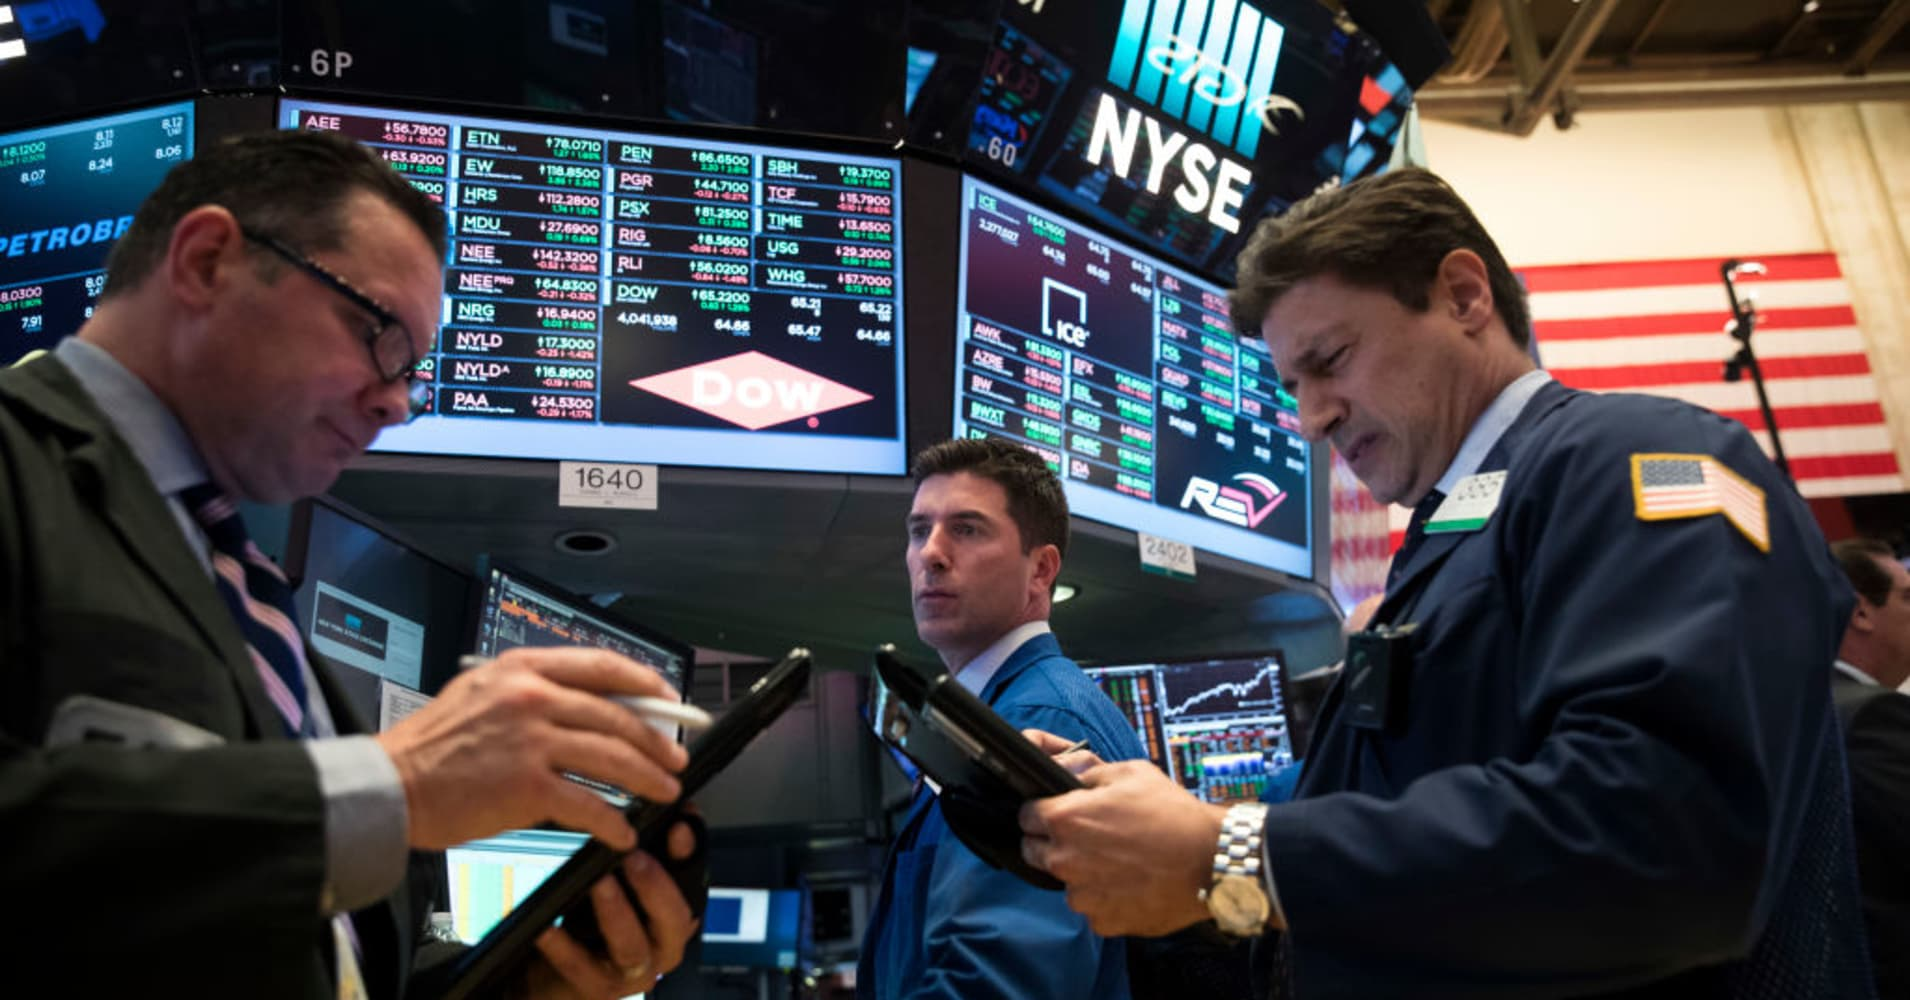 U.S. equities closed at record highs on Monday as Wall Street kicked off the fourth quarter on a high note.